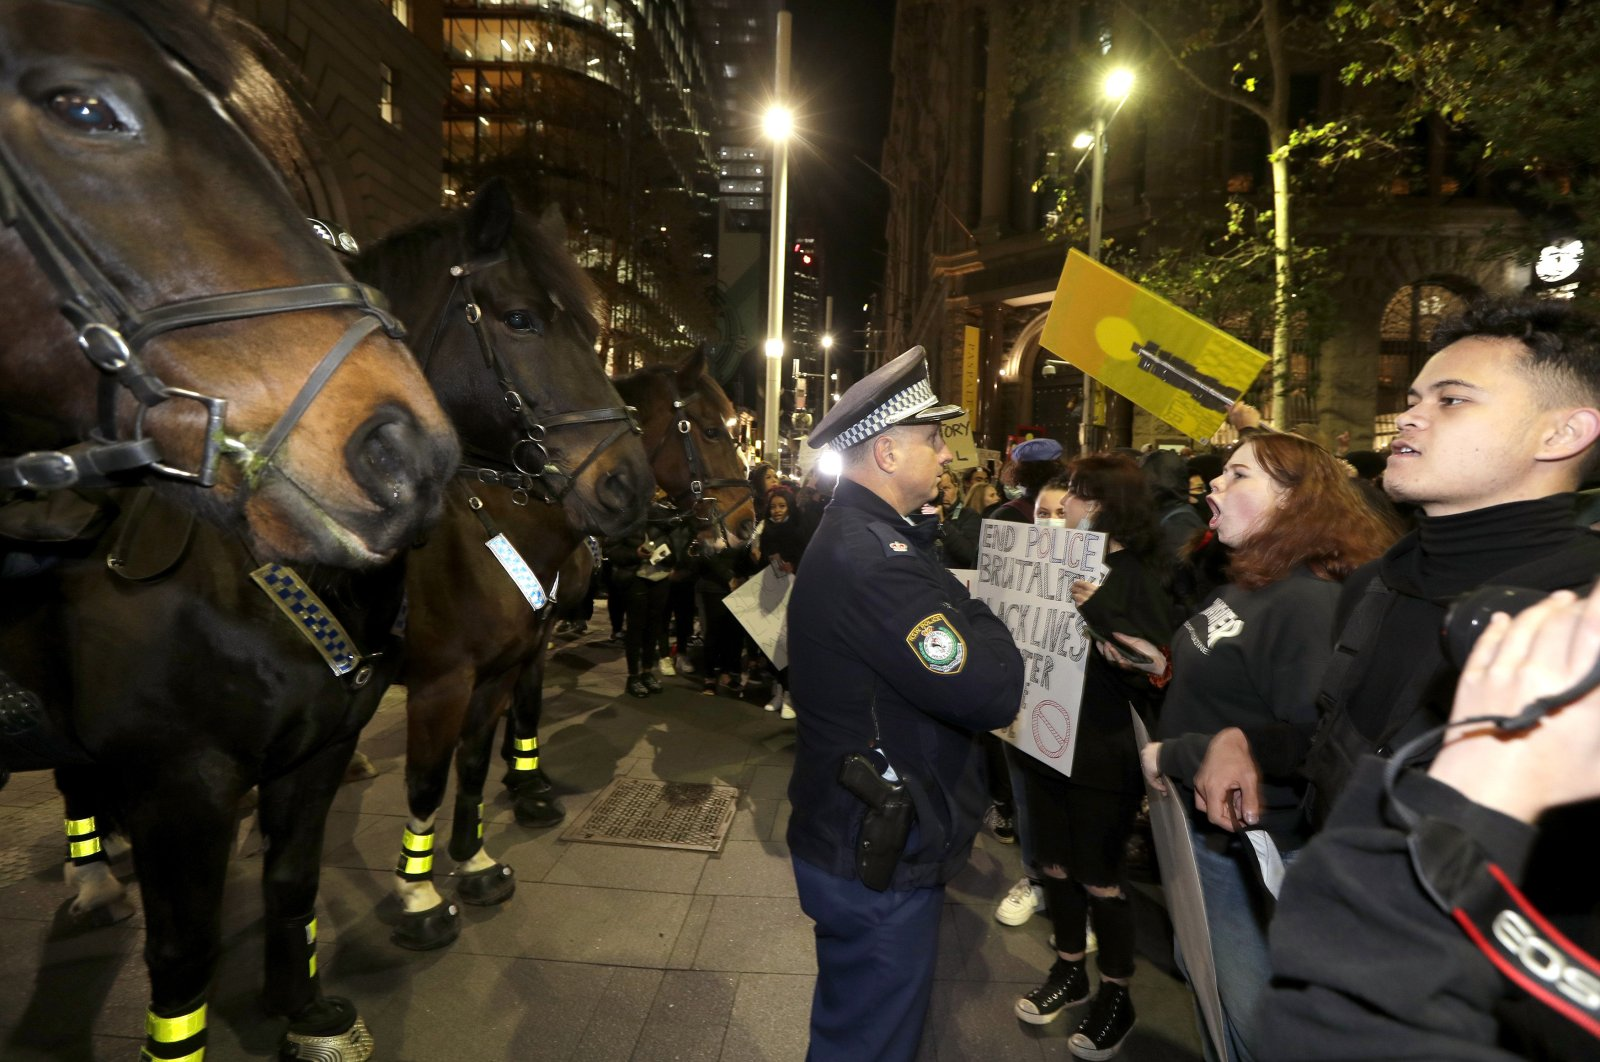 Protesters approach police on horseback as they gather in Sydney to support the cause of U.S. protests over the death of George Floyd, June 2, 2020,. (AP Photo)